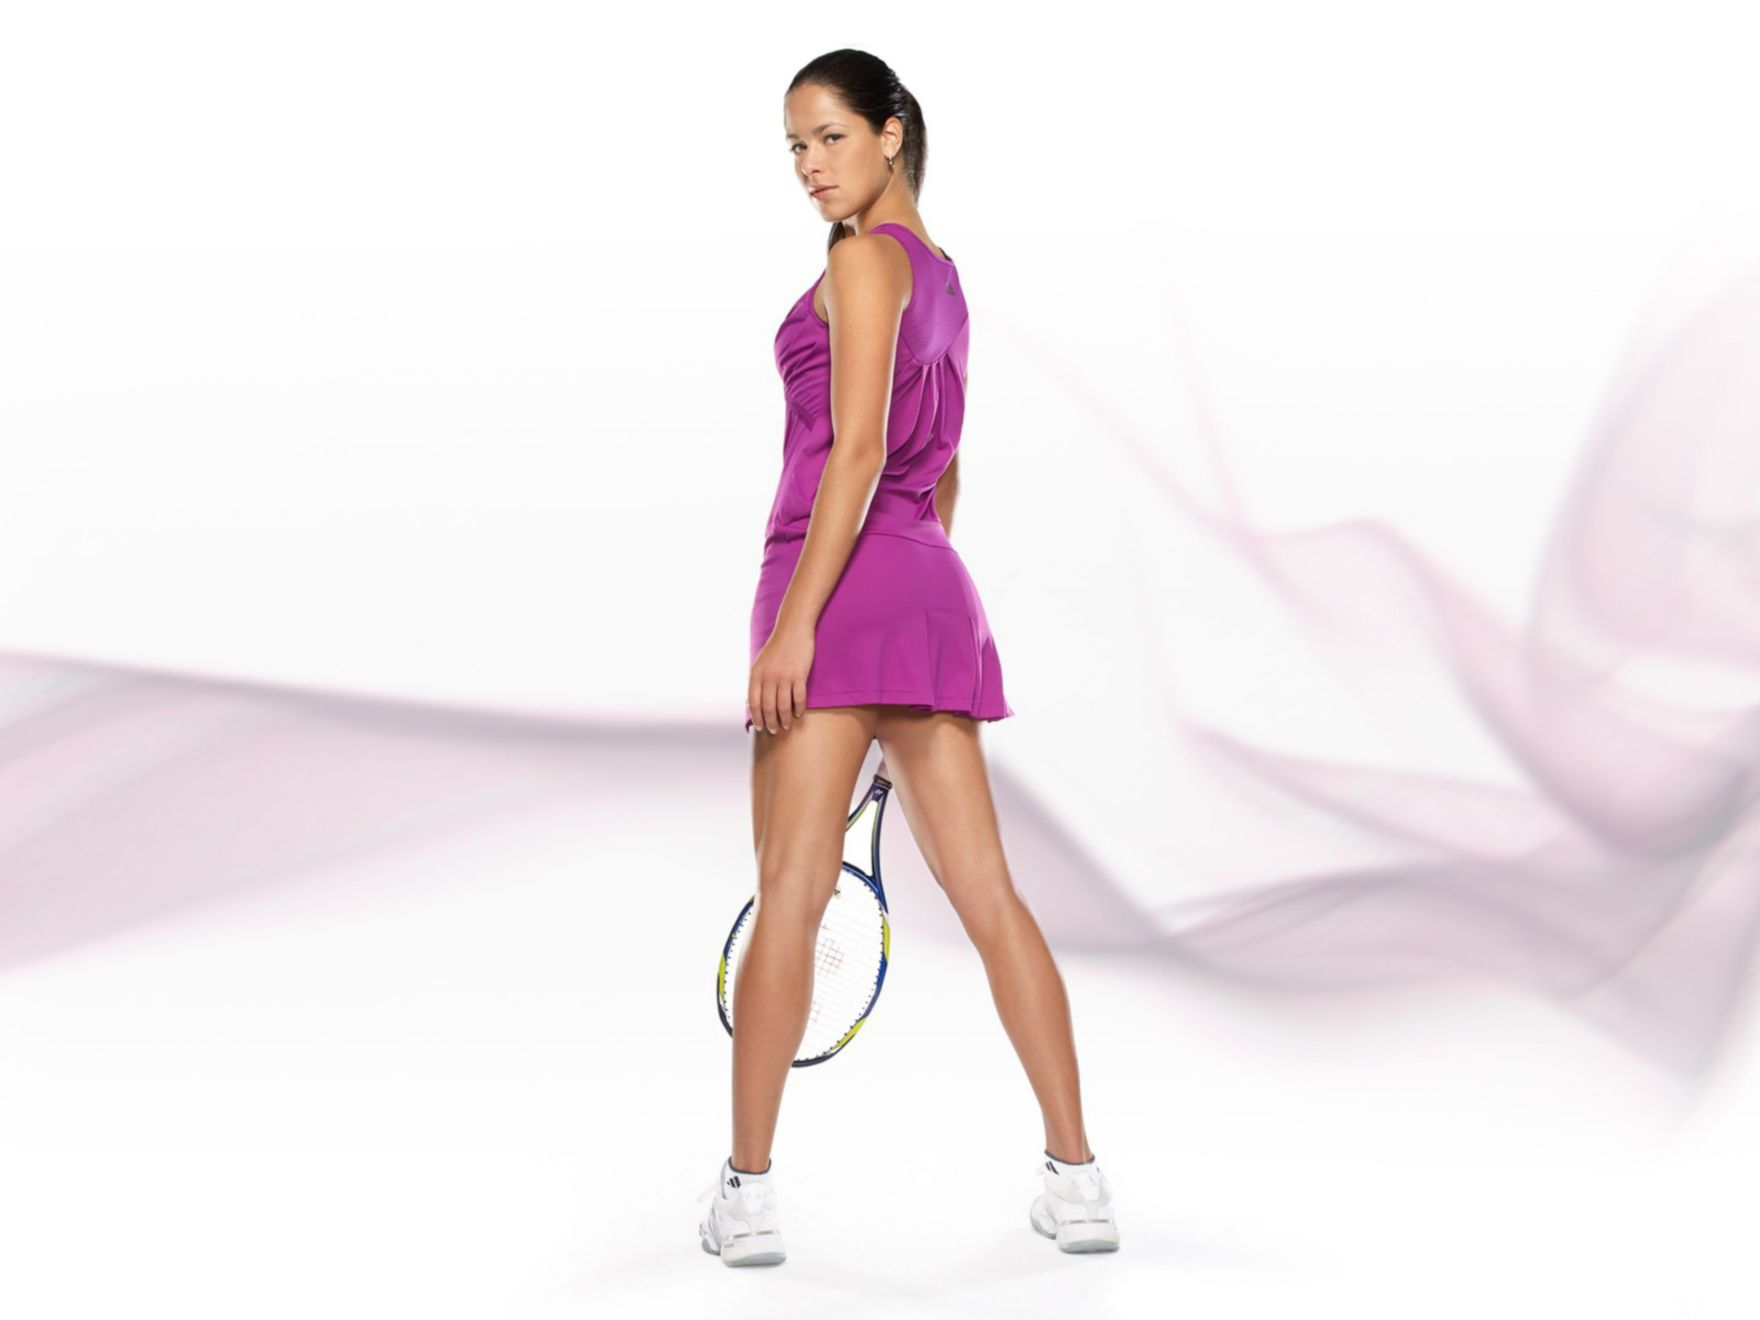 Download free HD Ana Ivanovic 5 Normal Wallpaper, image